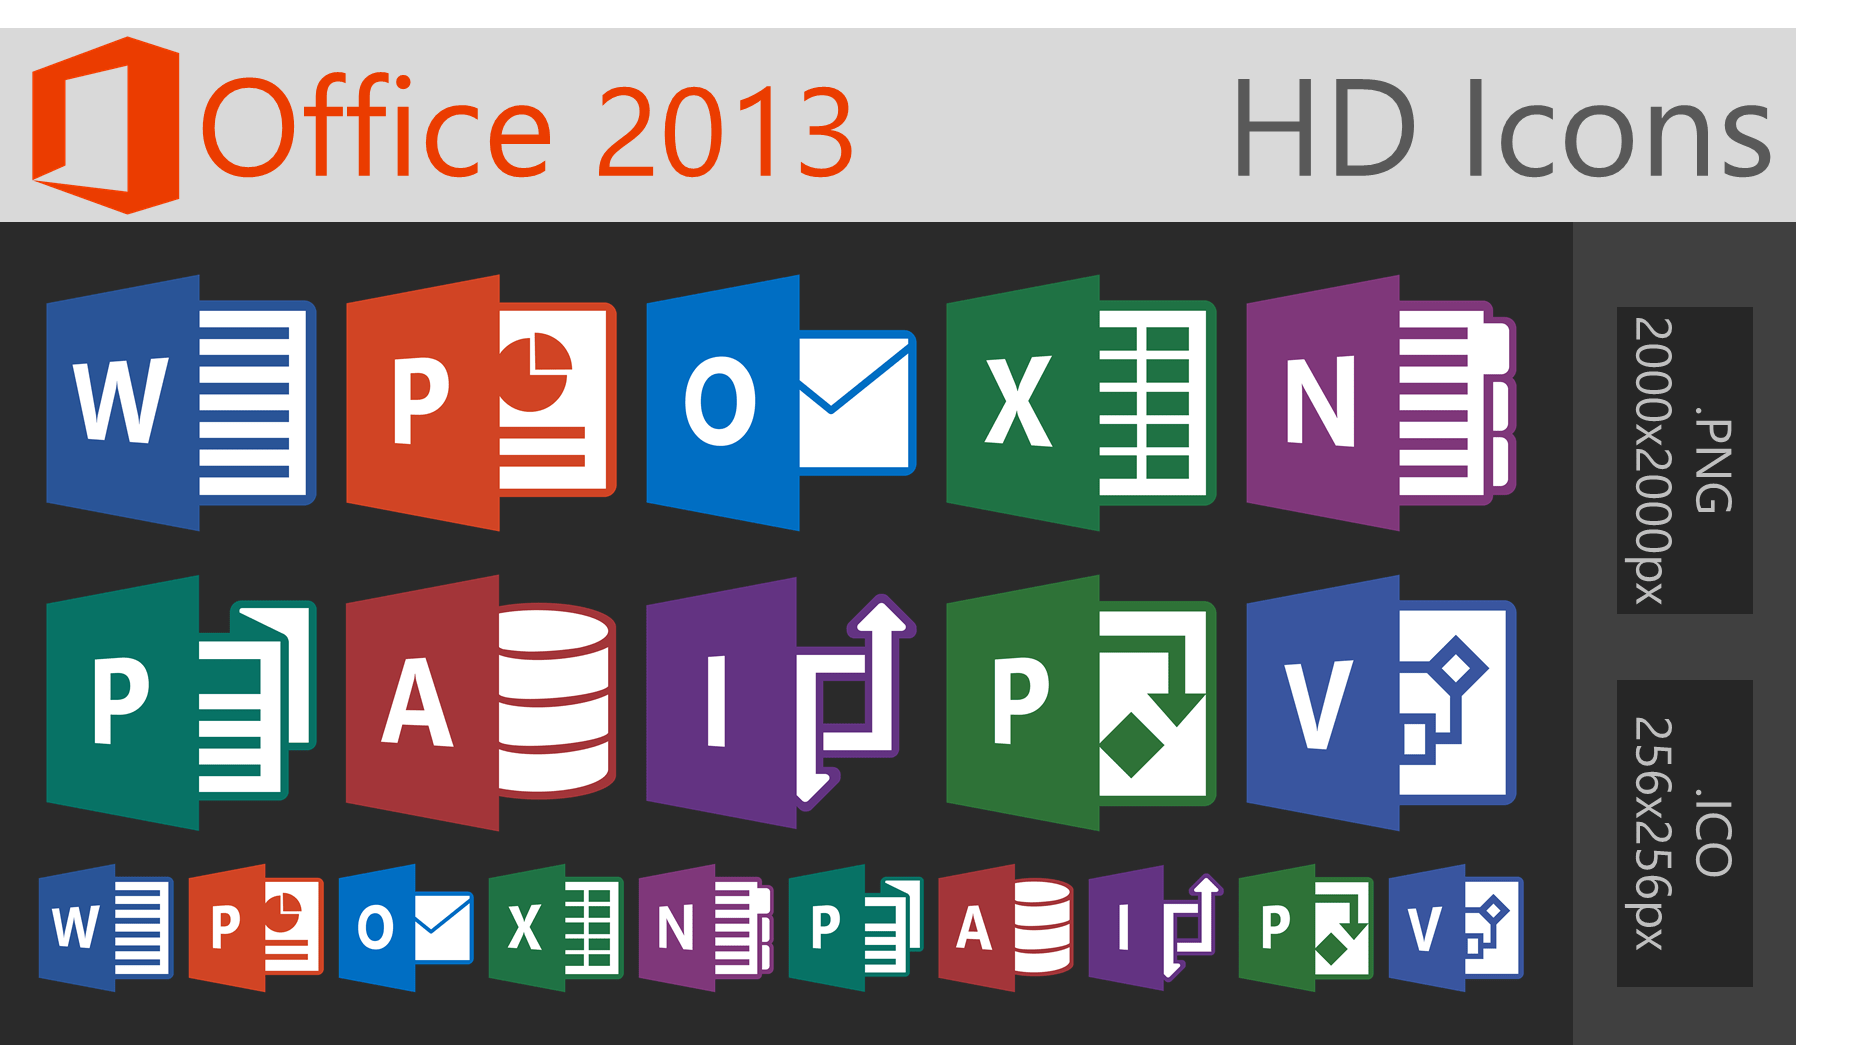 Pack Office Microsoft 2013 Office 2013 Hd Icons Large By Dakirby309 On Deviantart